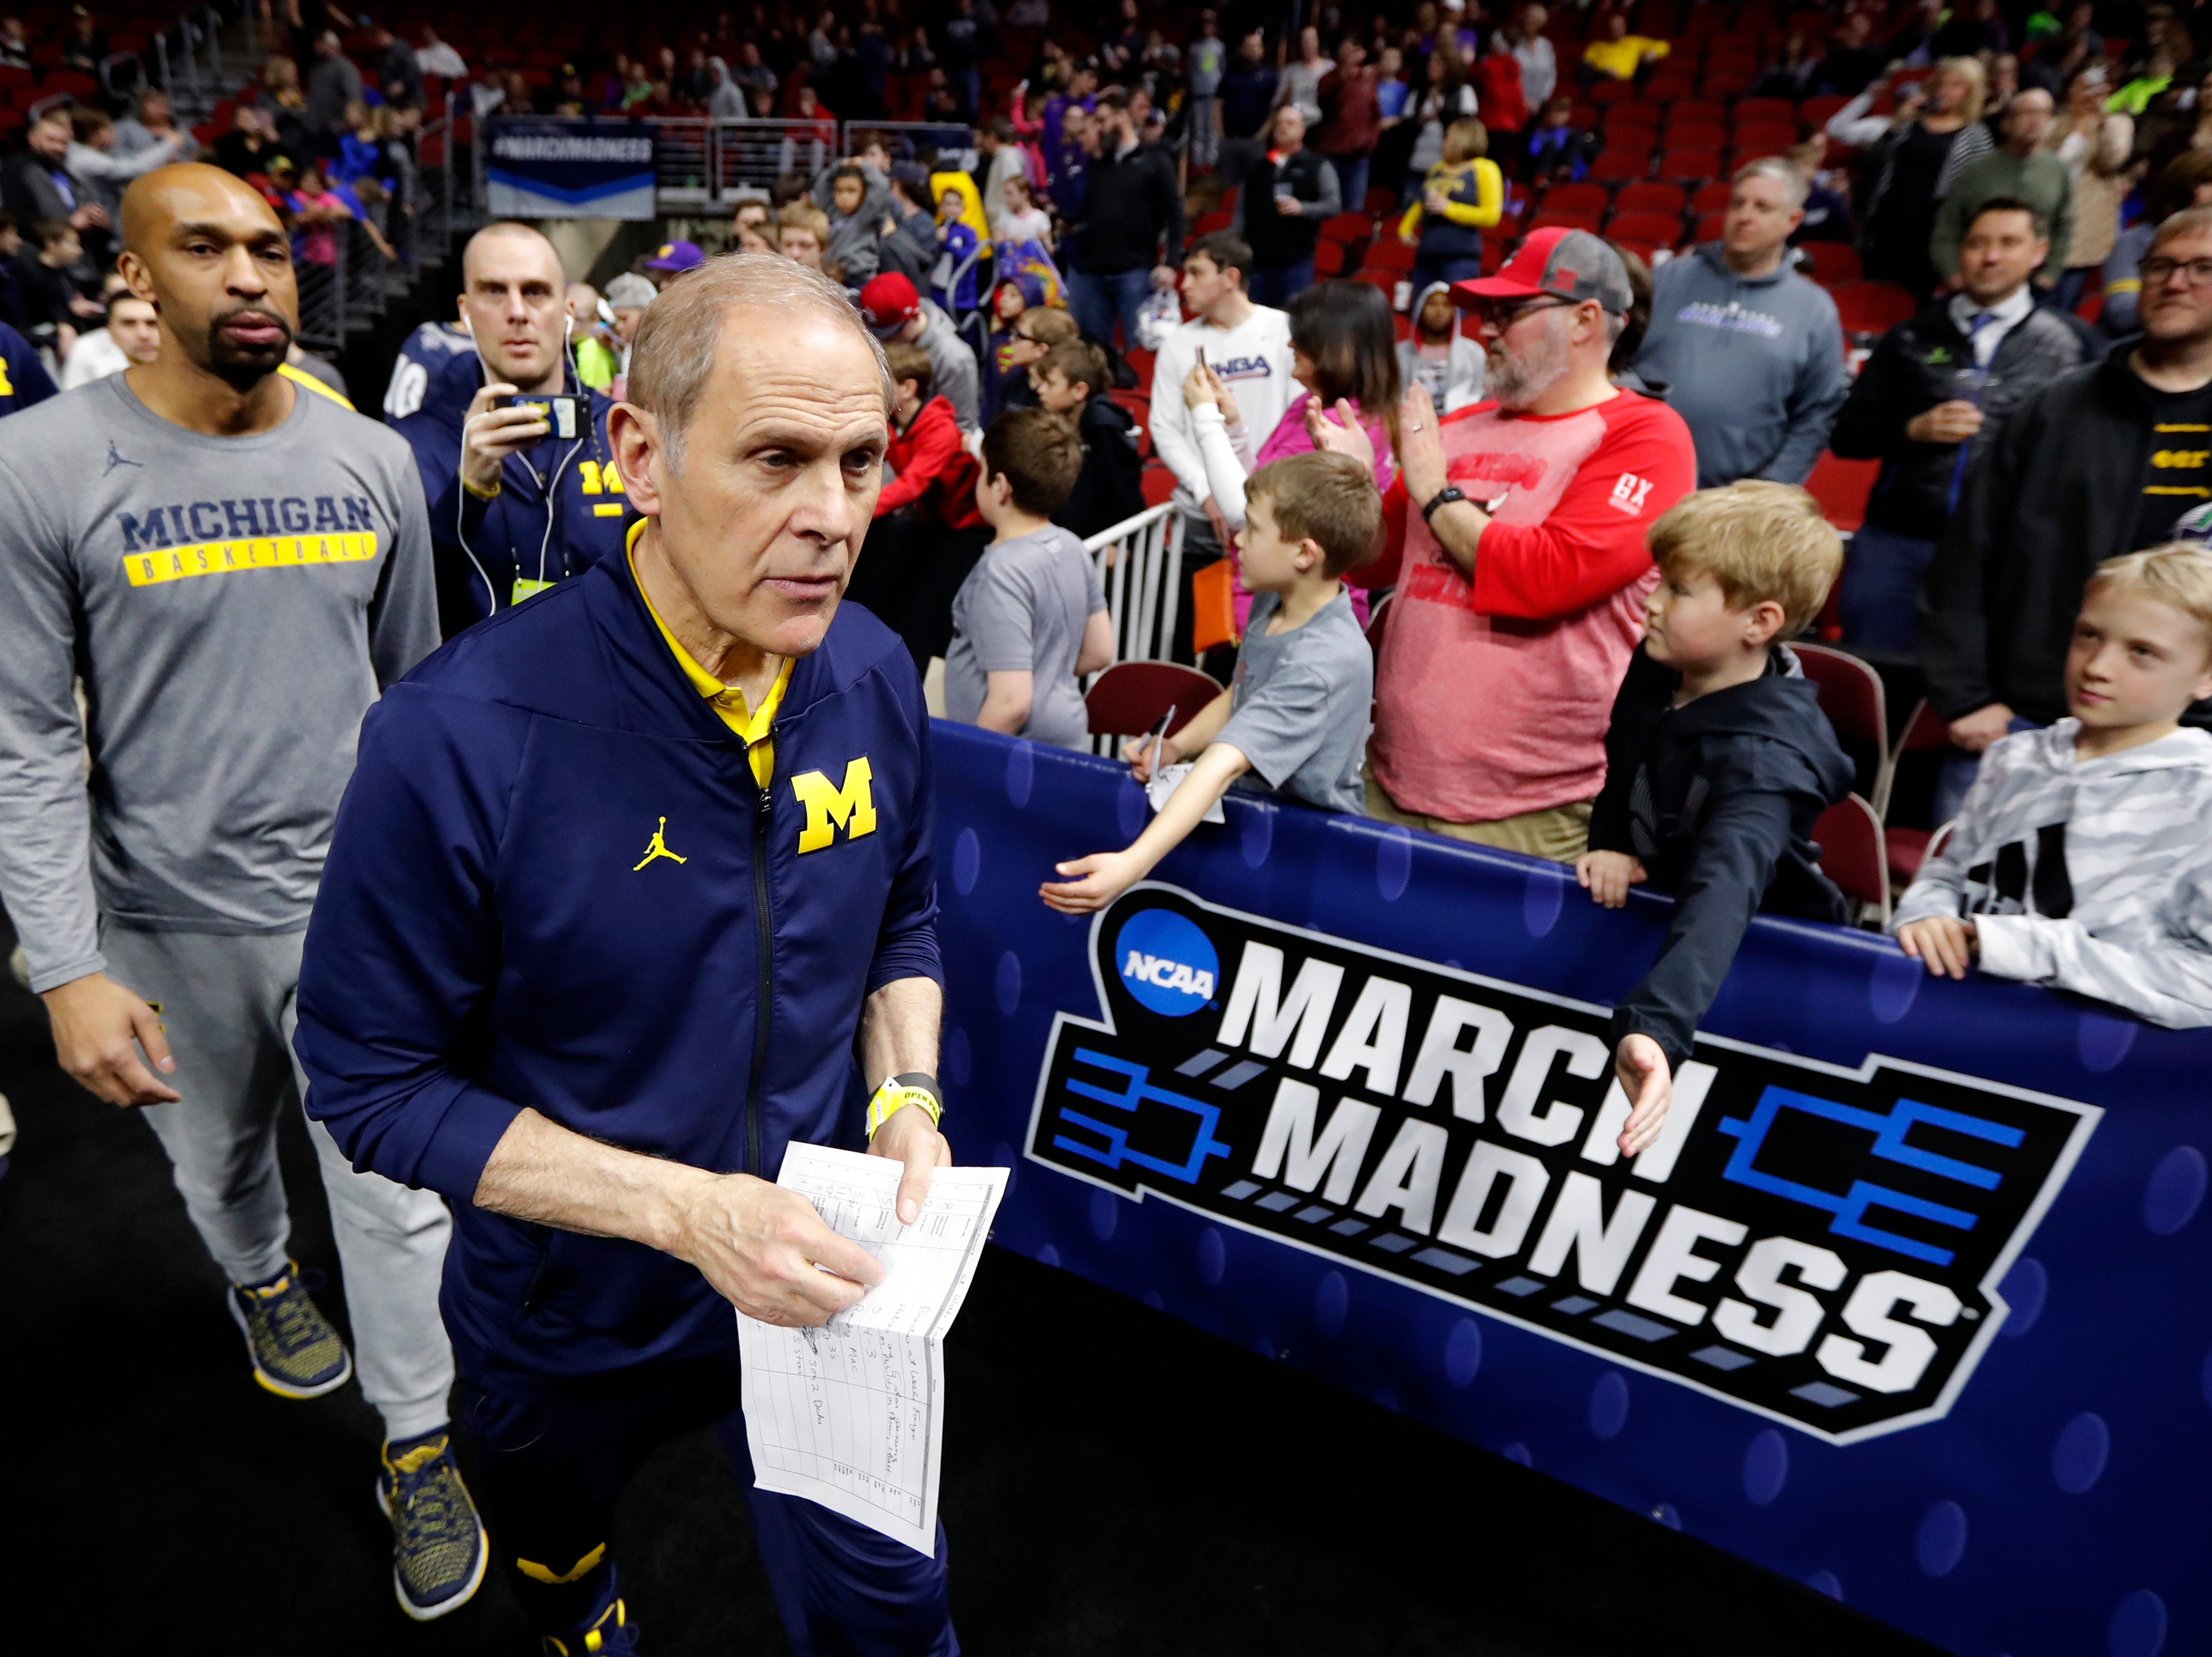 Michigan head coach John Beilein walks to the court for practice at the NCAA men's college basketball tournament, Wednesday, March 20, 2019, in Des Moines, Iowa. Michigan plays Montana on Thursday. (AP Photo/Charlie Neibergall)